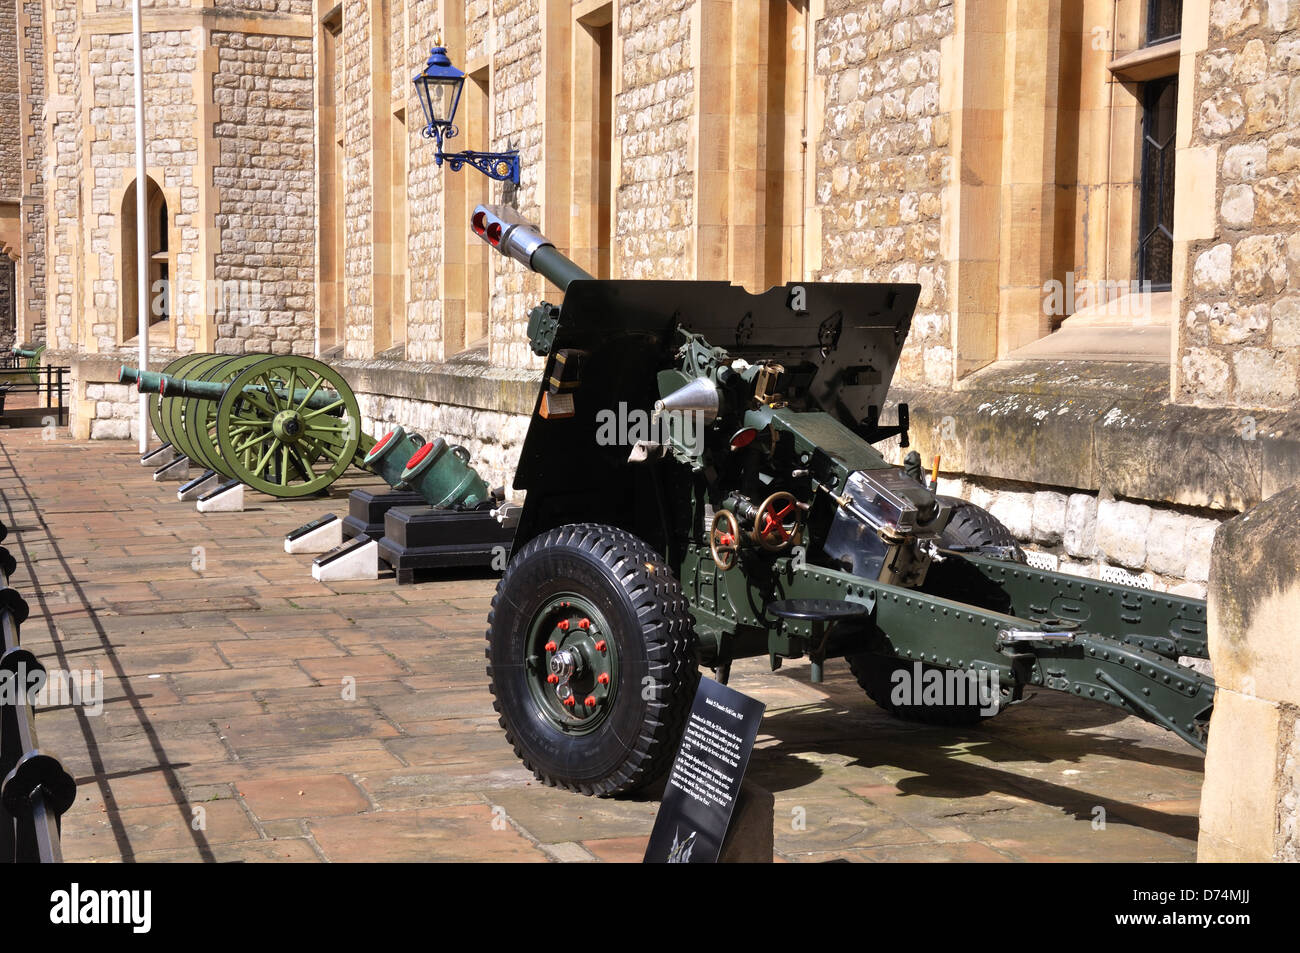 Artillerie auf Display, Tower of London, London, UK Stockbild